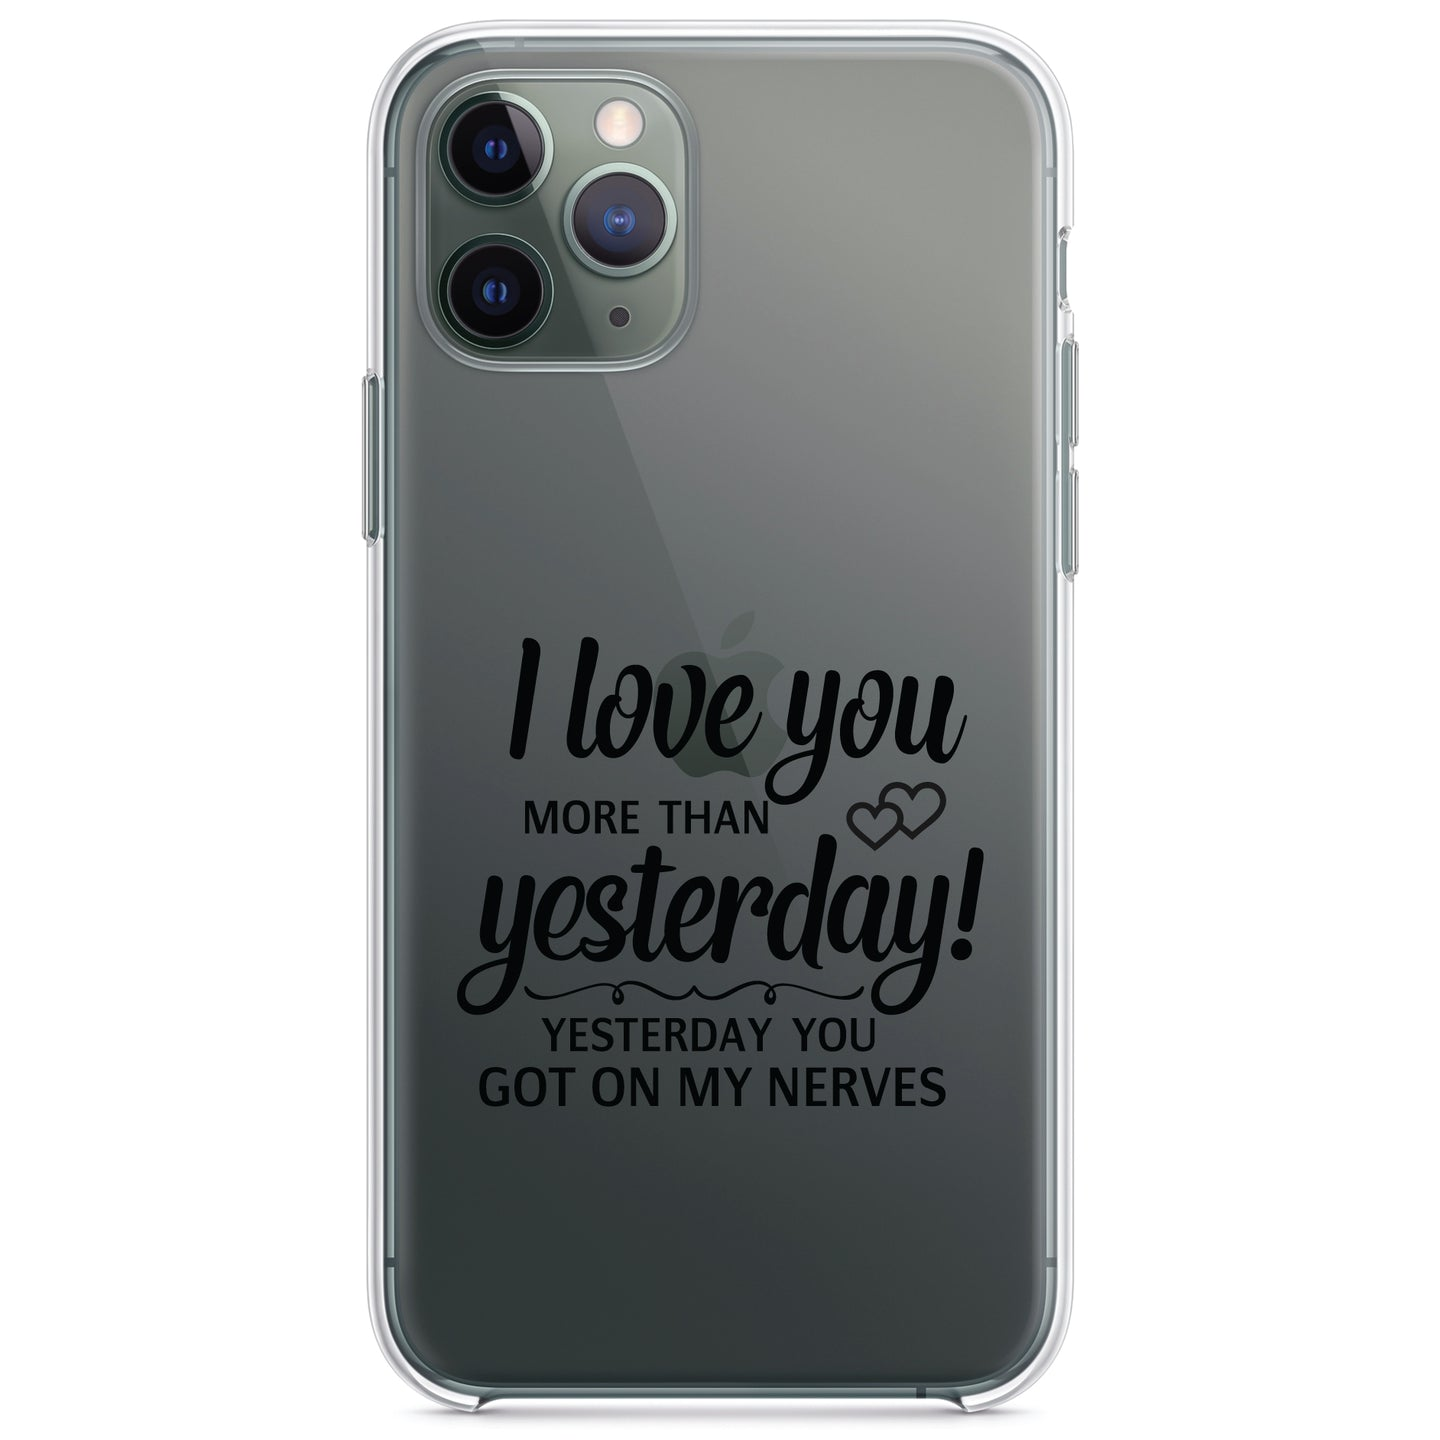 DistinctInk® Clear Shockproof Hybrid Case for Apple iPhone / Samsung Galaxy / Google Pixel - I Love You More Than Yesterday, Got On My Nerves